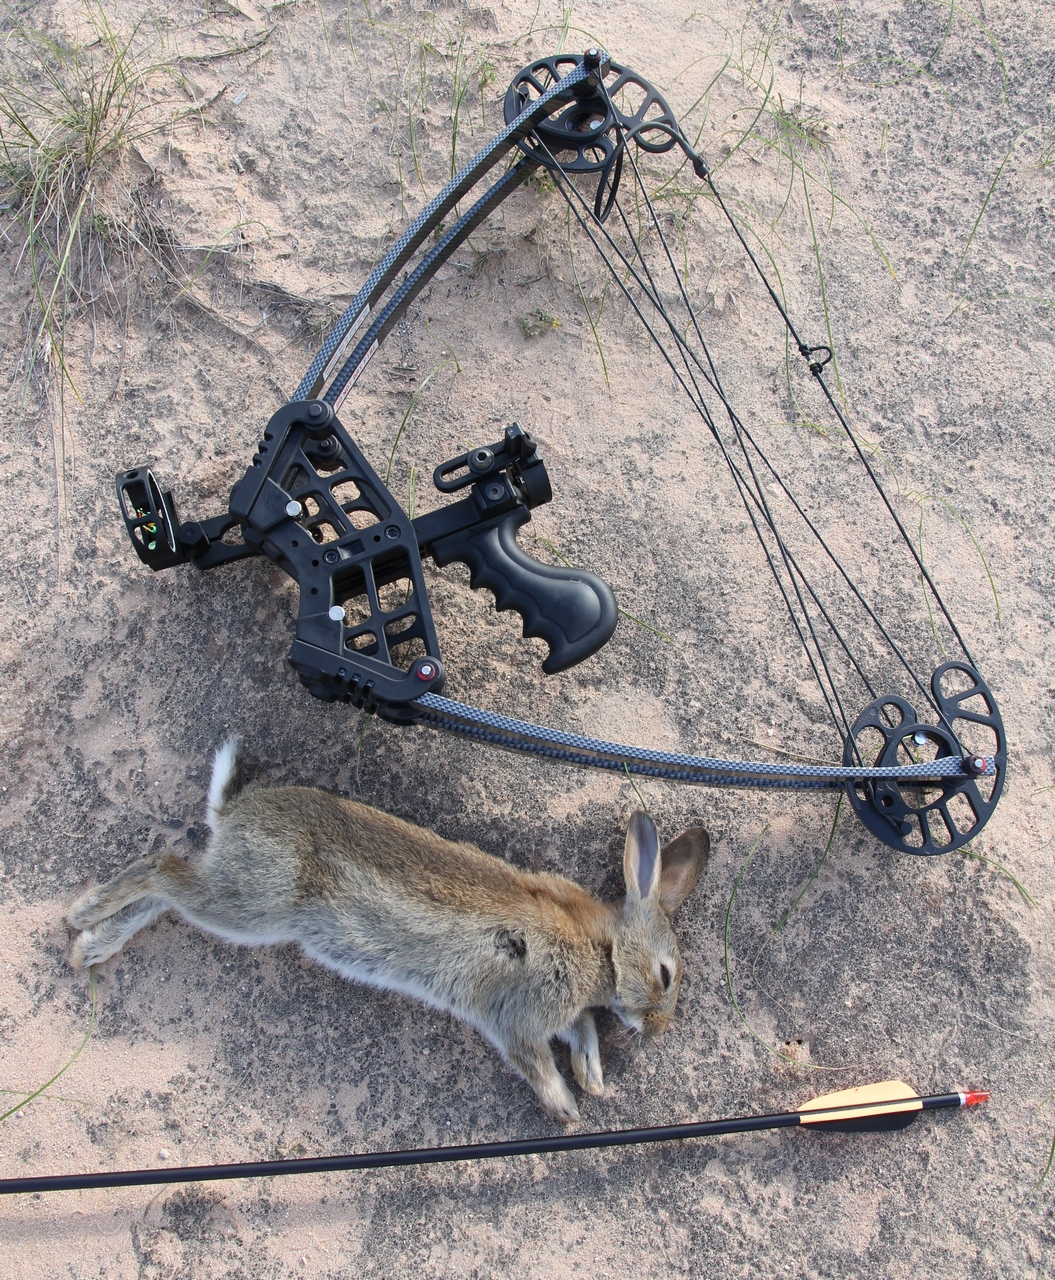 Accuracy is not lacking, allowing tiny targets such as rabbits to be hunted.